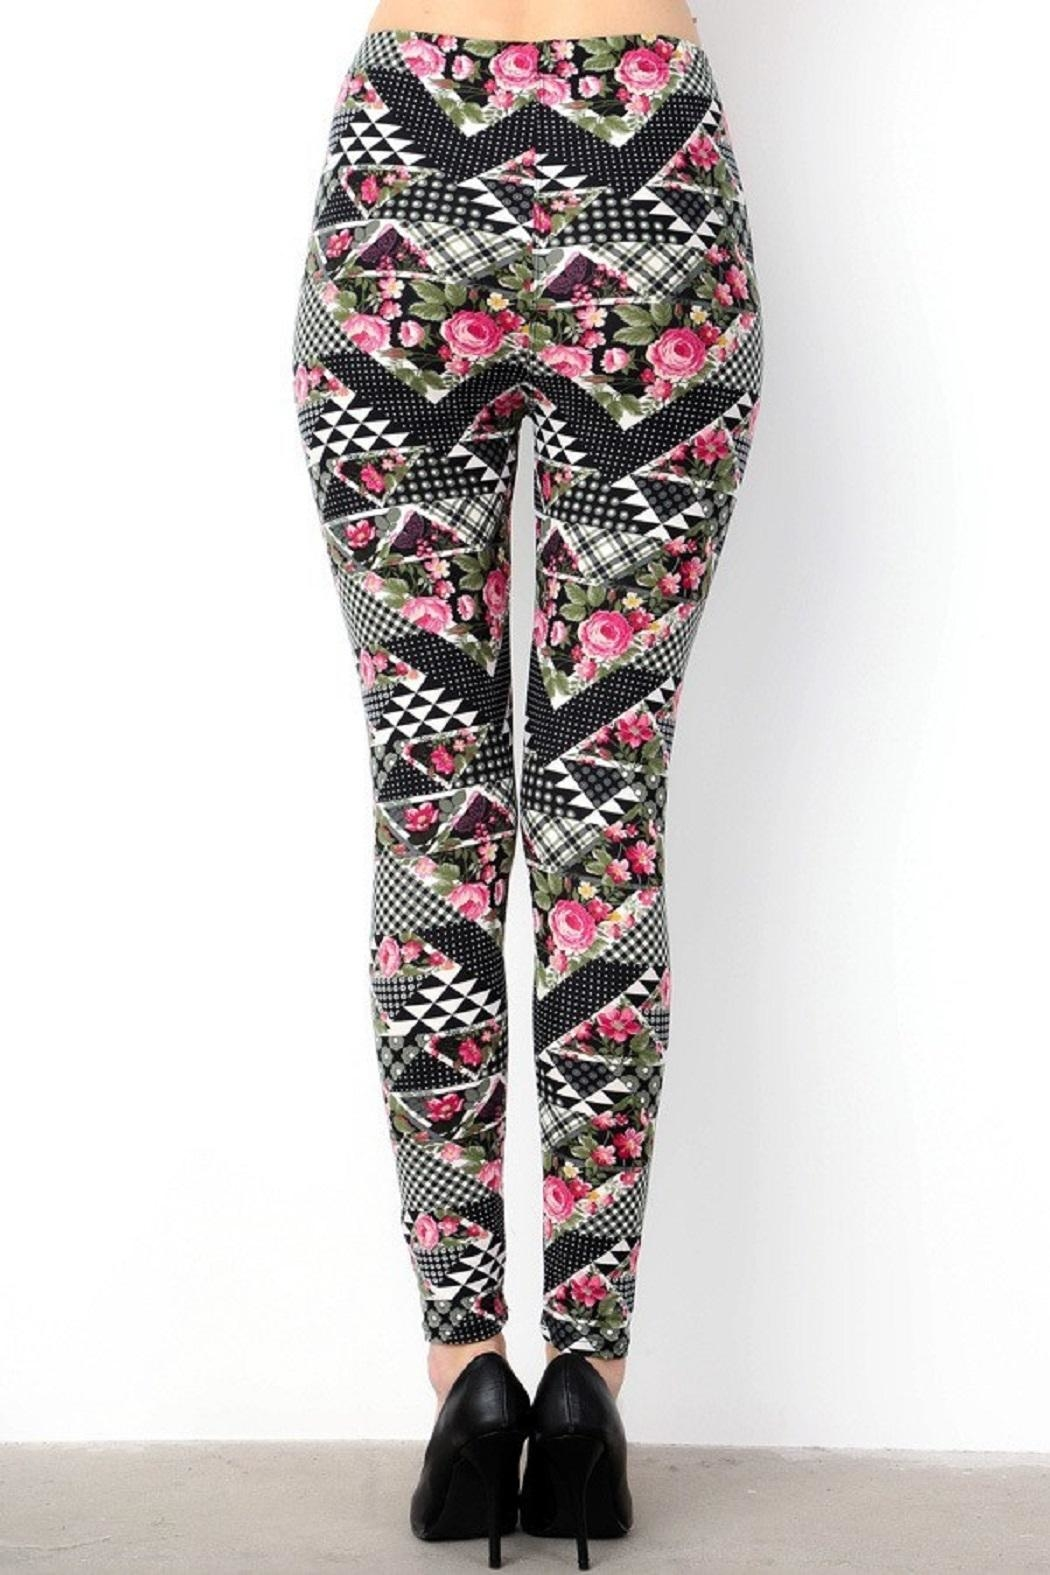 6a8ac543839 New Mix Muti Pattern Leggings from Pennsylvania by Empire Styles ...